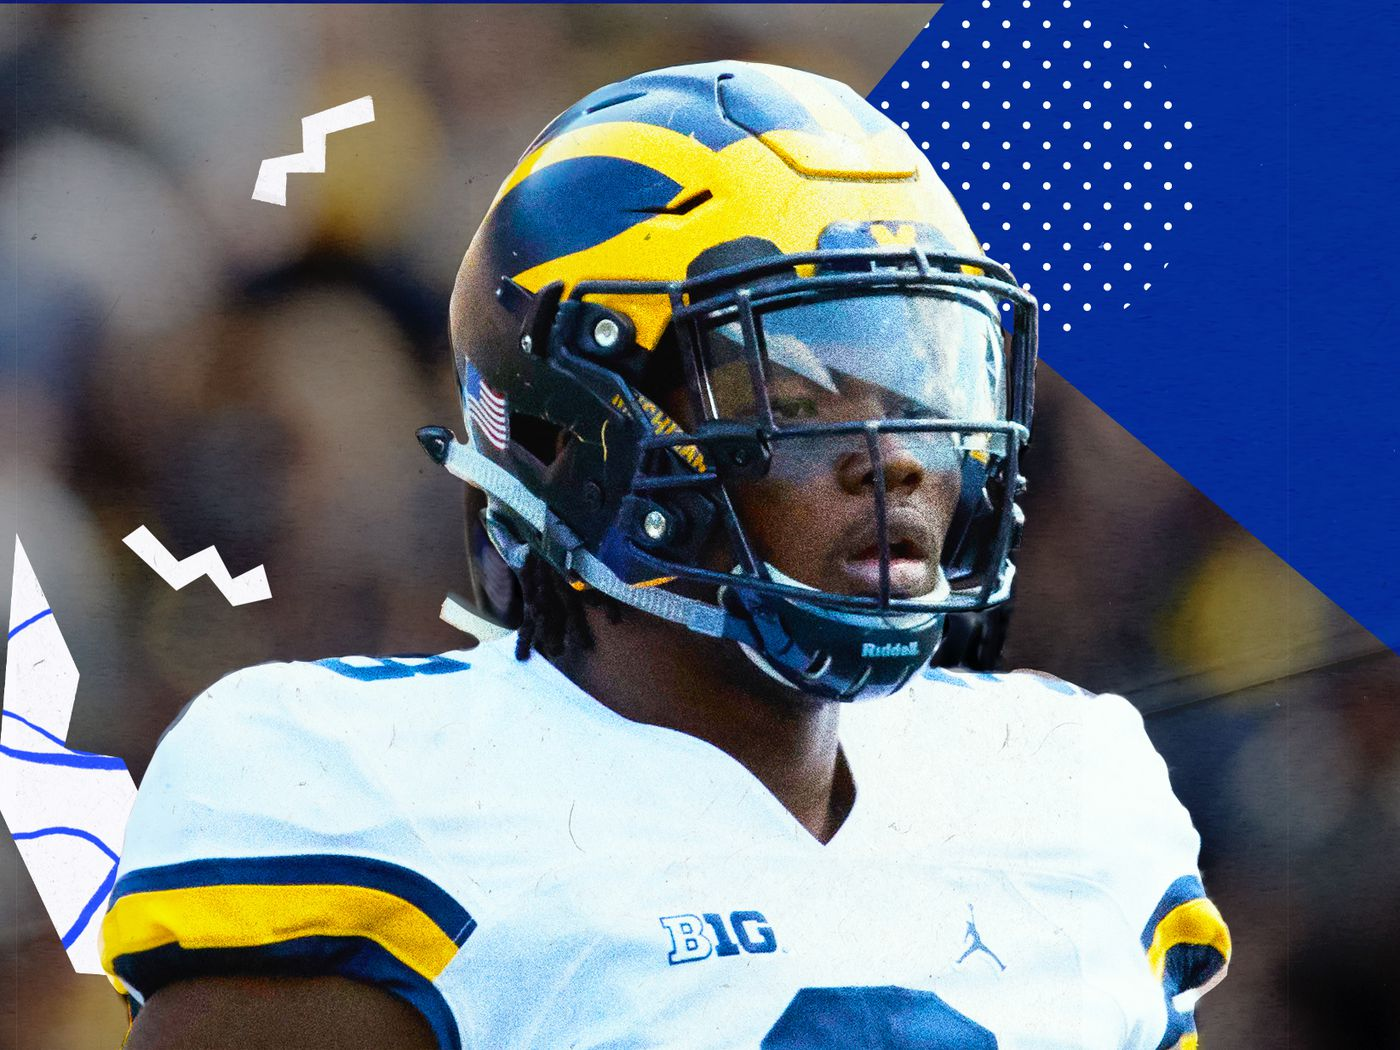 timeless design e0750 a8cf6 Rashan Gary has potential, but will it be enough with the ...